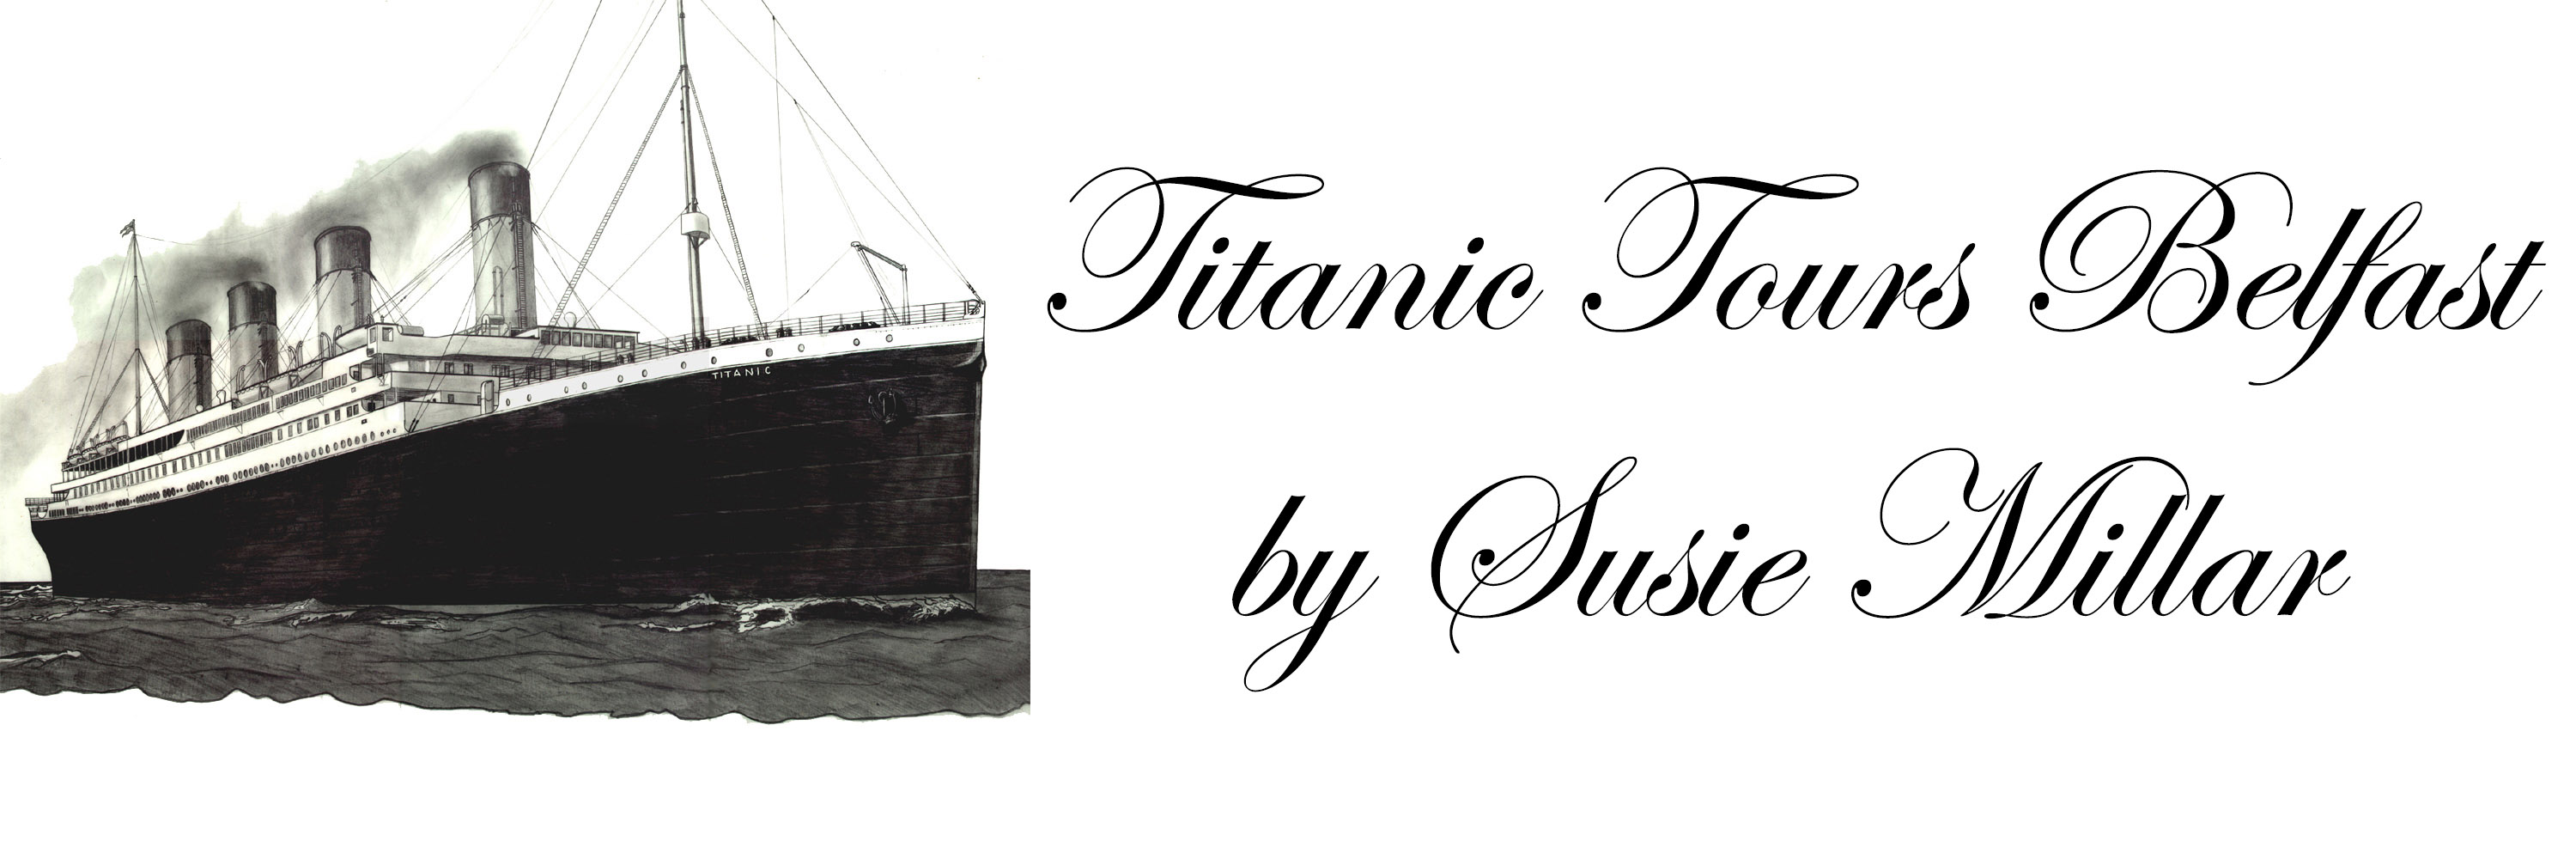 TTB Logo - Titanic drawing by Michael Lane